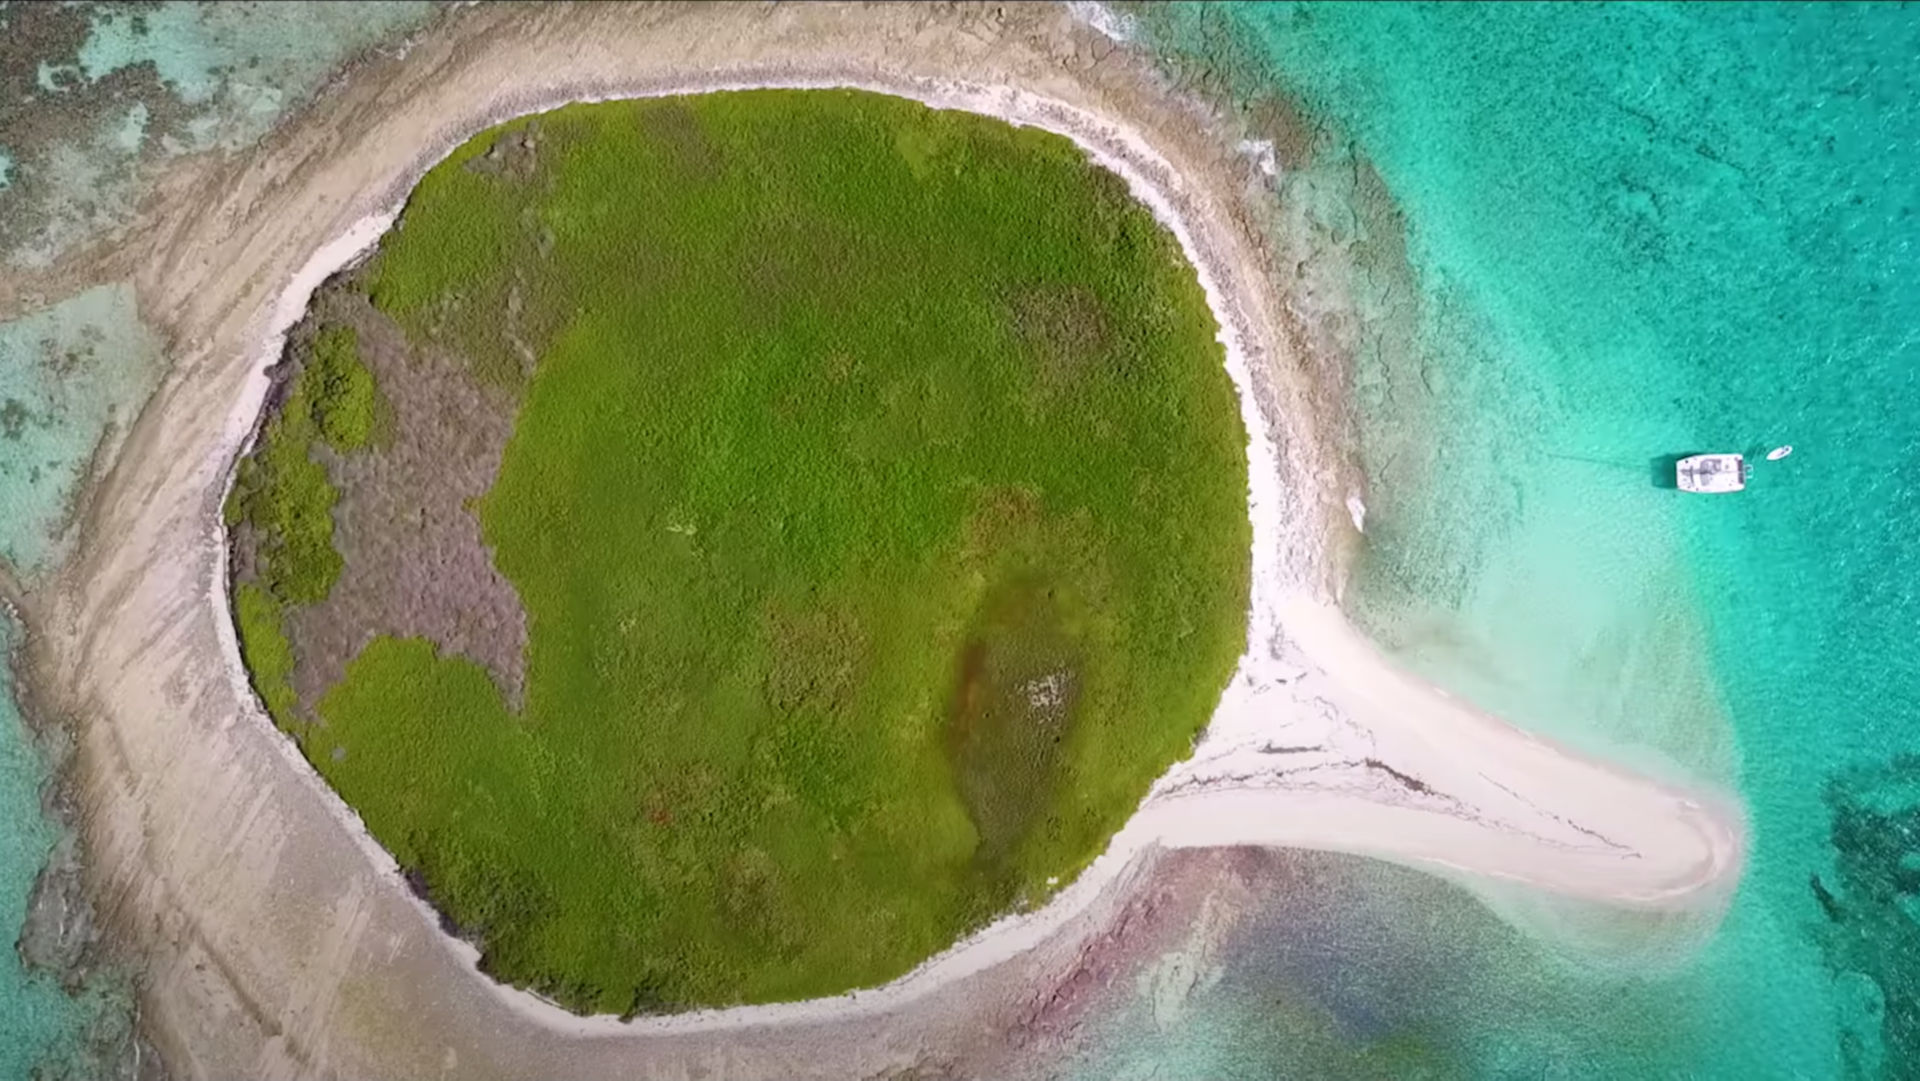 aerial view of a tropical island